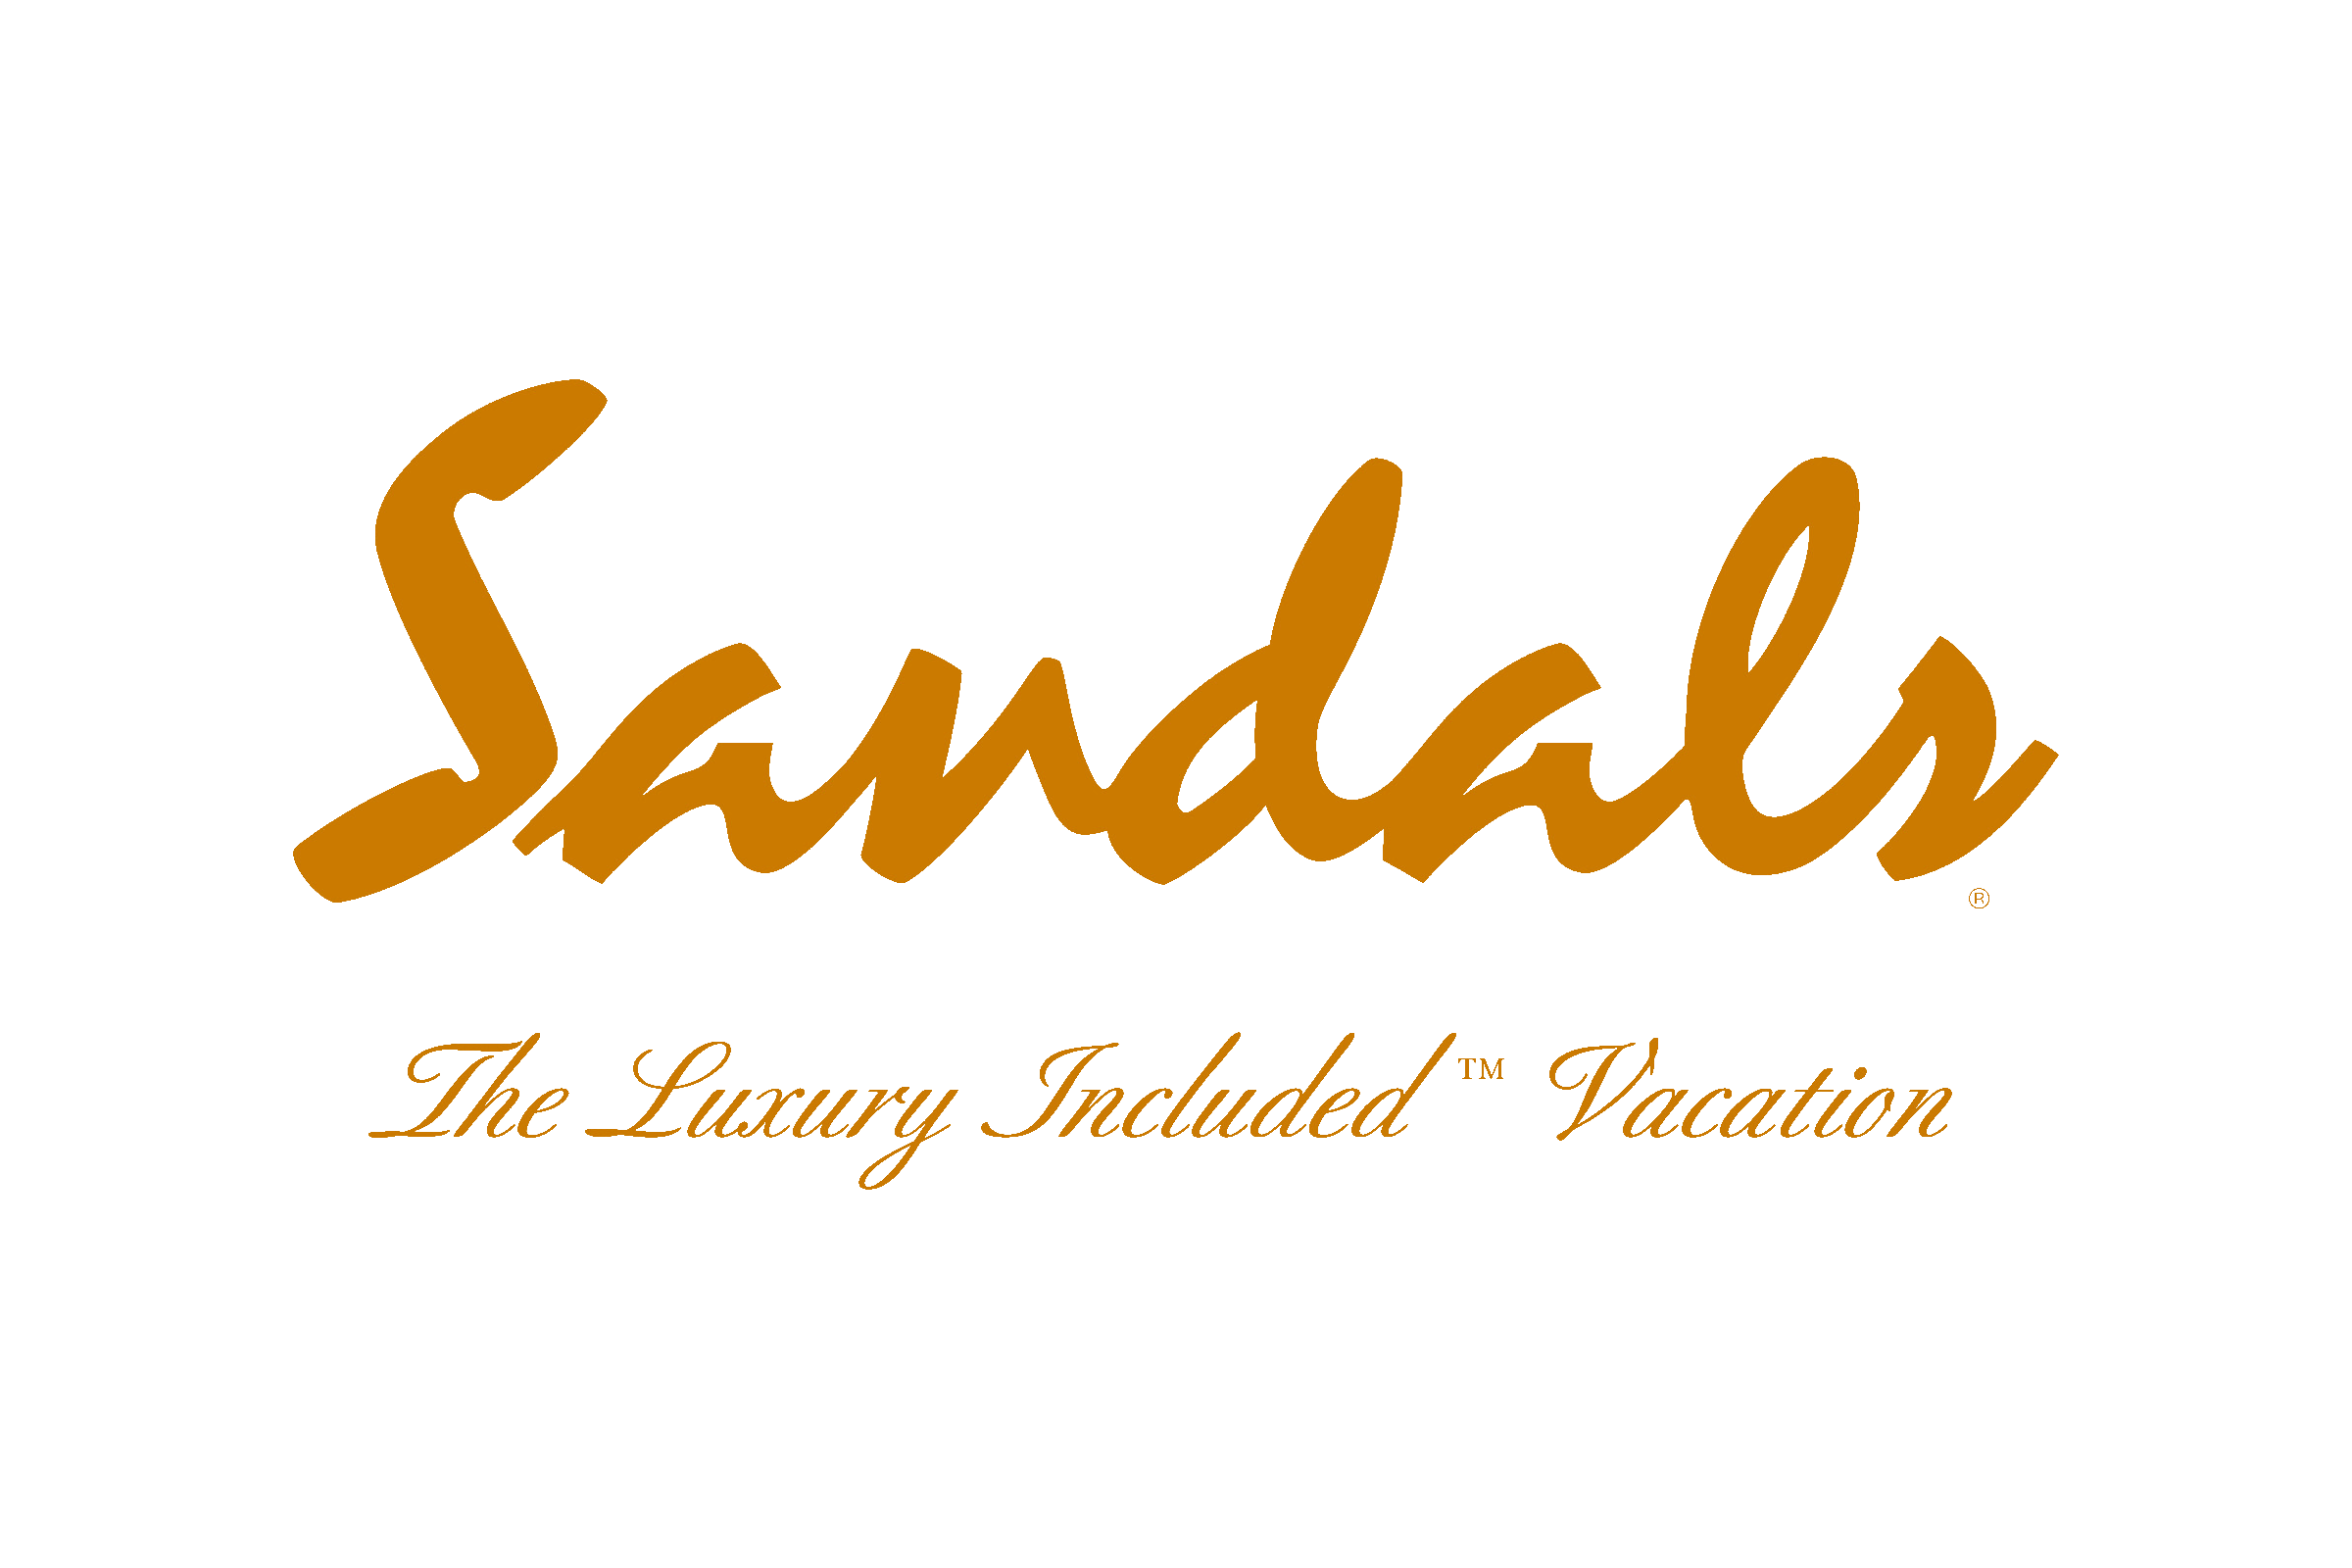 Sandals Resorts - Come enjoy the only vacation where everything is included! From your incredible room accommodations, ground transfers, top-shelf liquor, food, water activities, gratuities and more, Sandals has it covered for a true all-inclusive vacation.